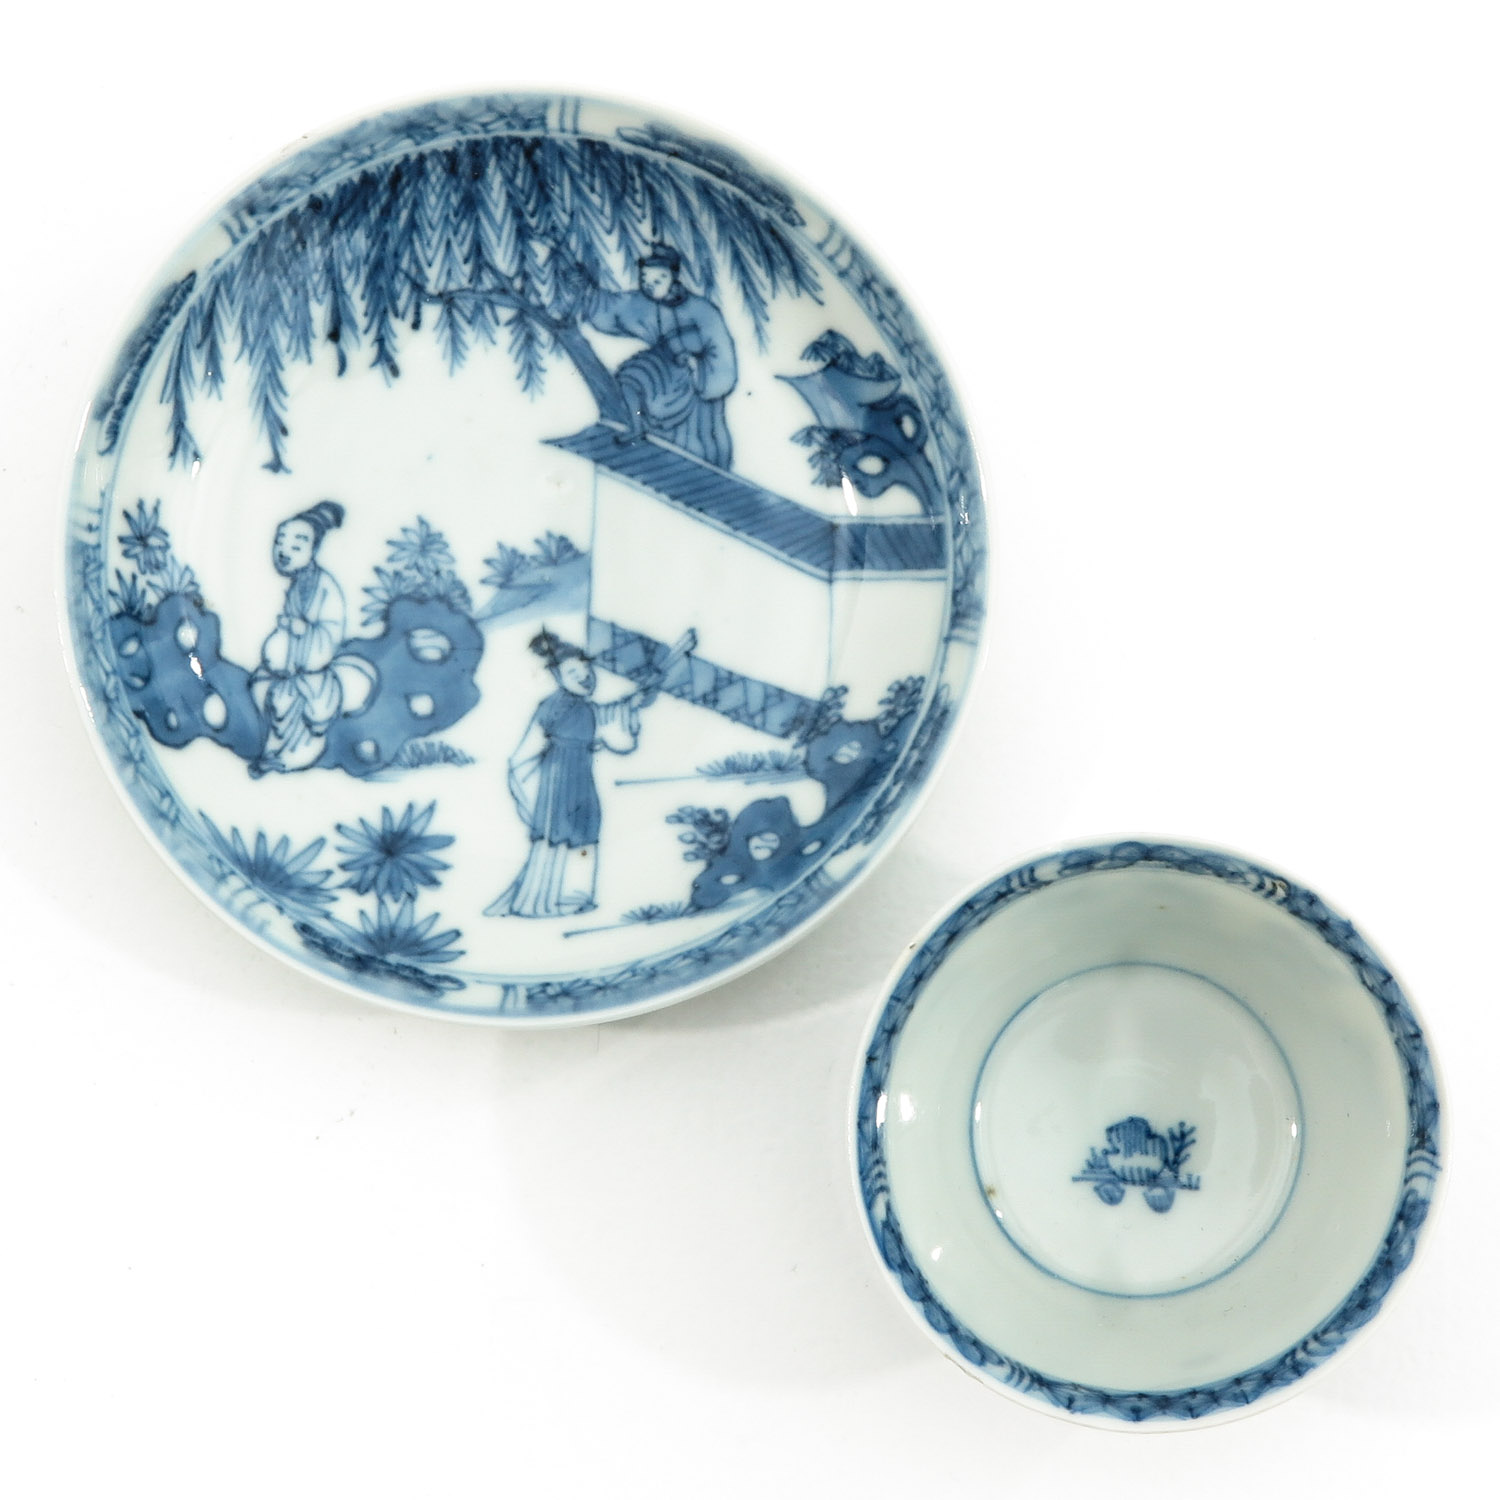 A Blue and White Cup and Saucer - Image 5 of 10